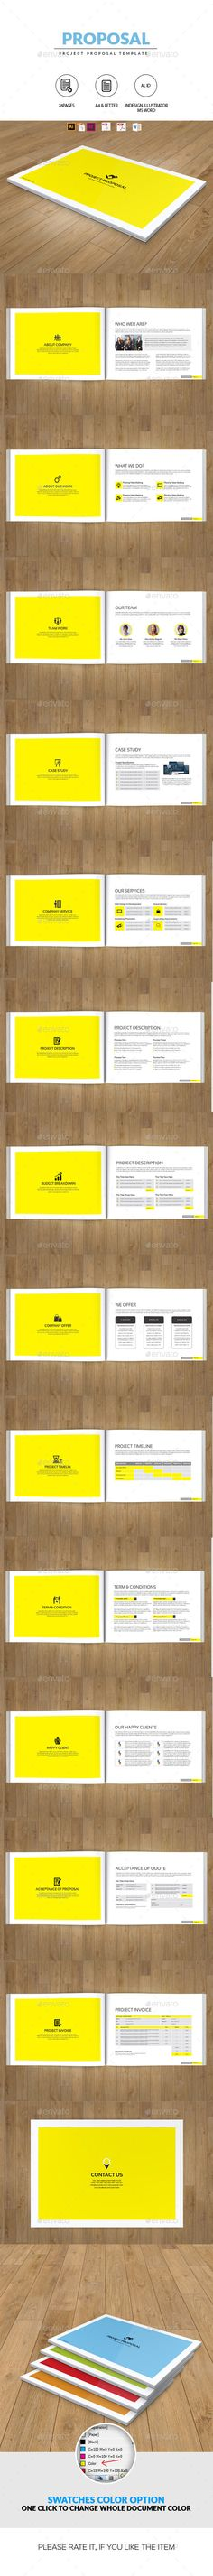 Finance, Proposals and Brochure template on Pinterest - construction work proposal template